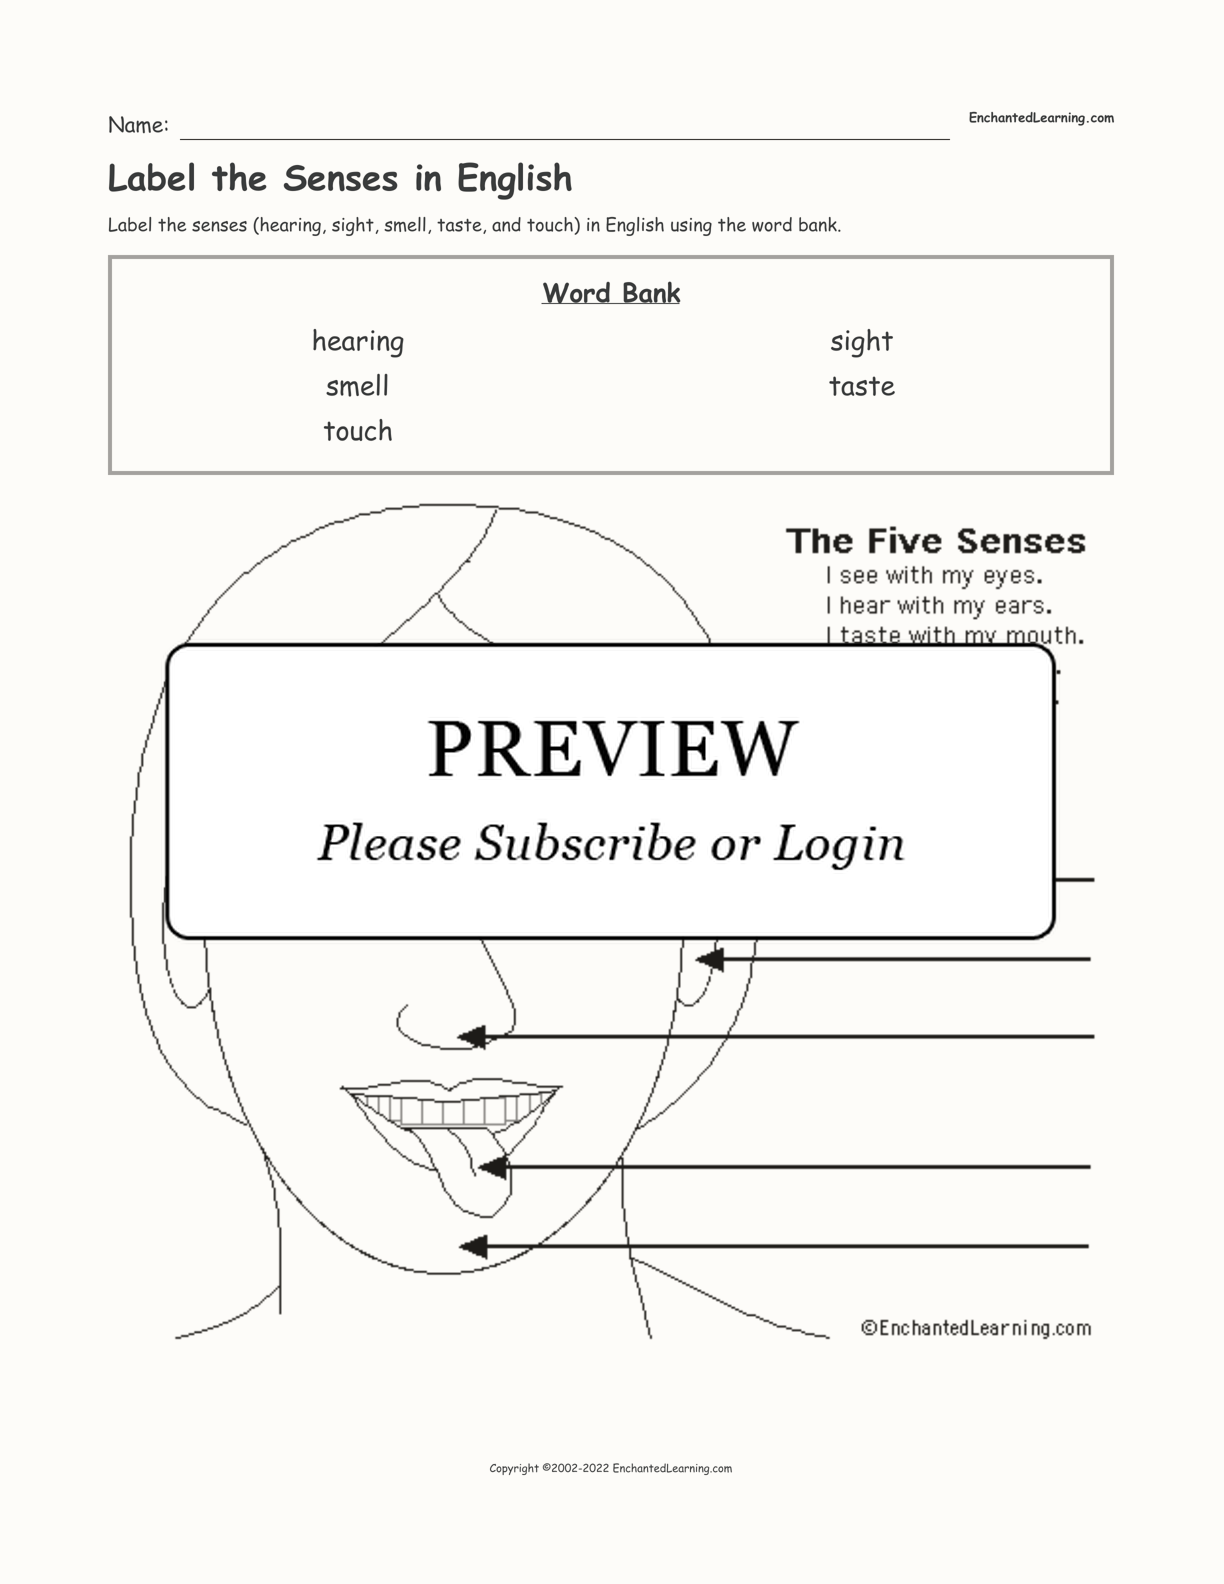 Label the Senses in English interactive worksheet page 1